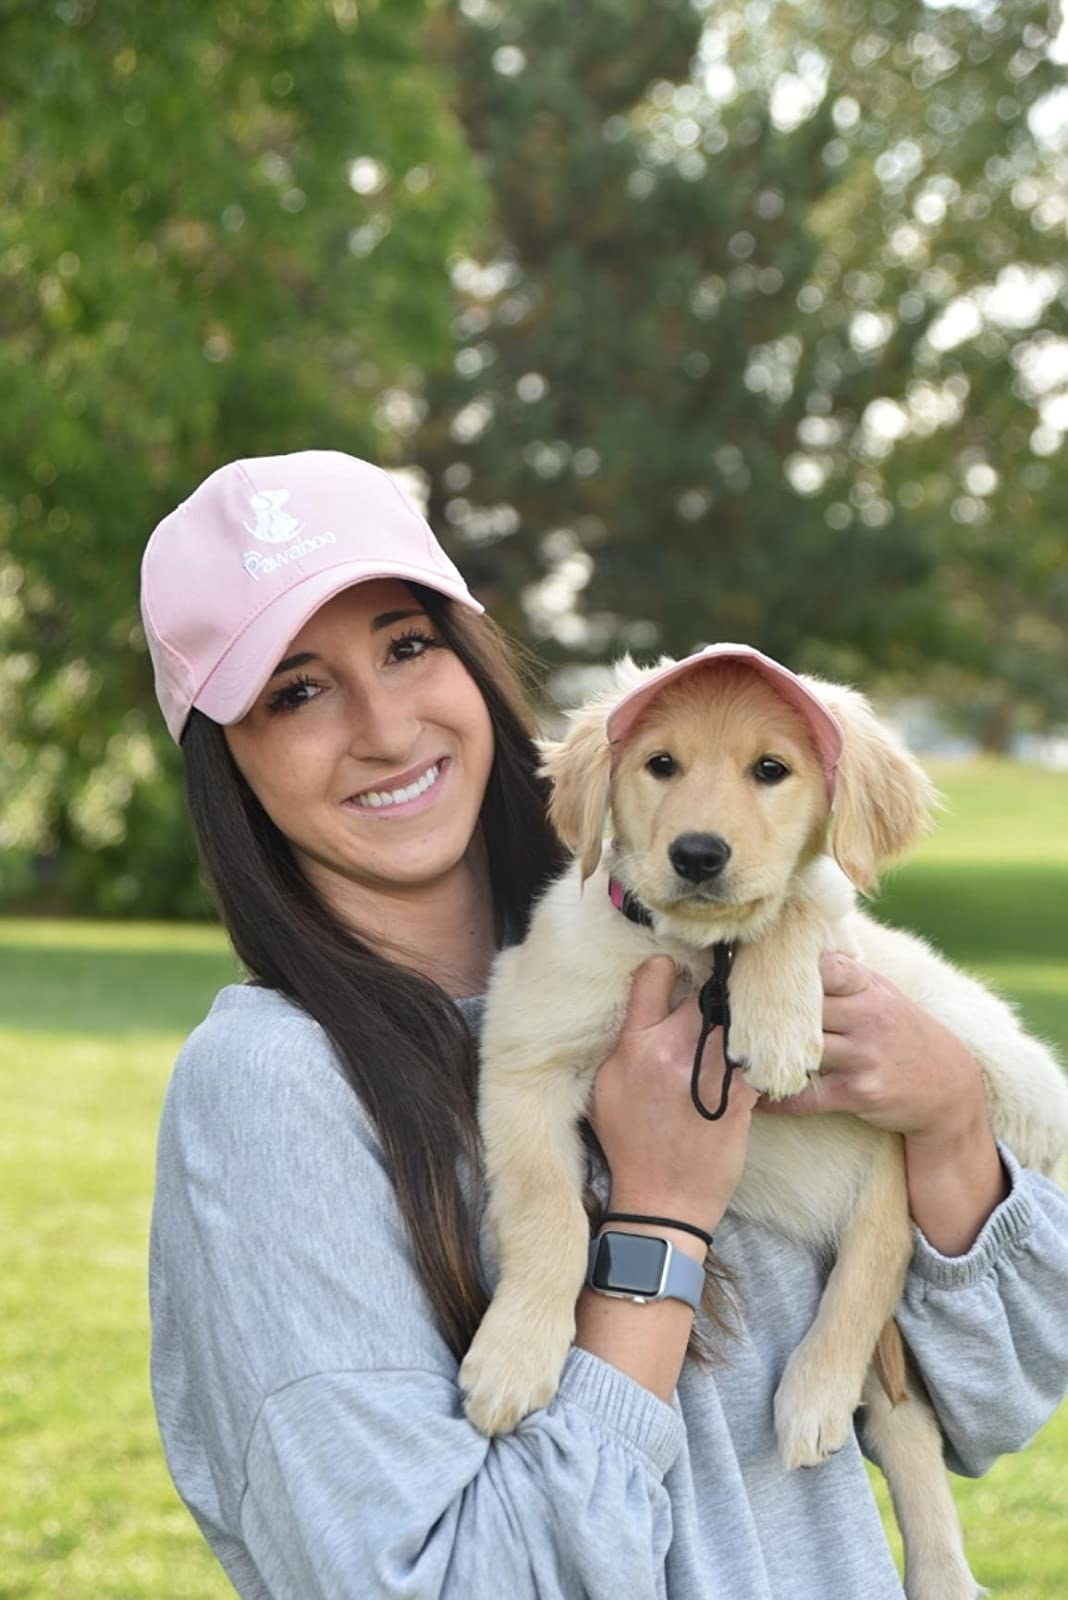 image of reviewer holding up a puppy, both of them wearing matching pink baseball hats